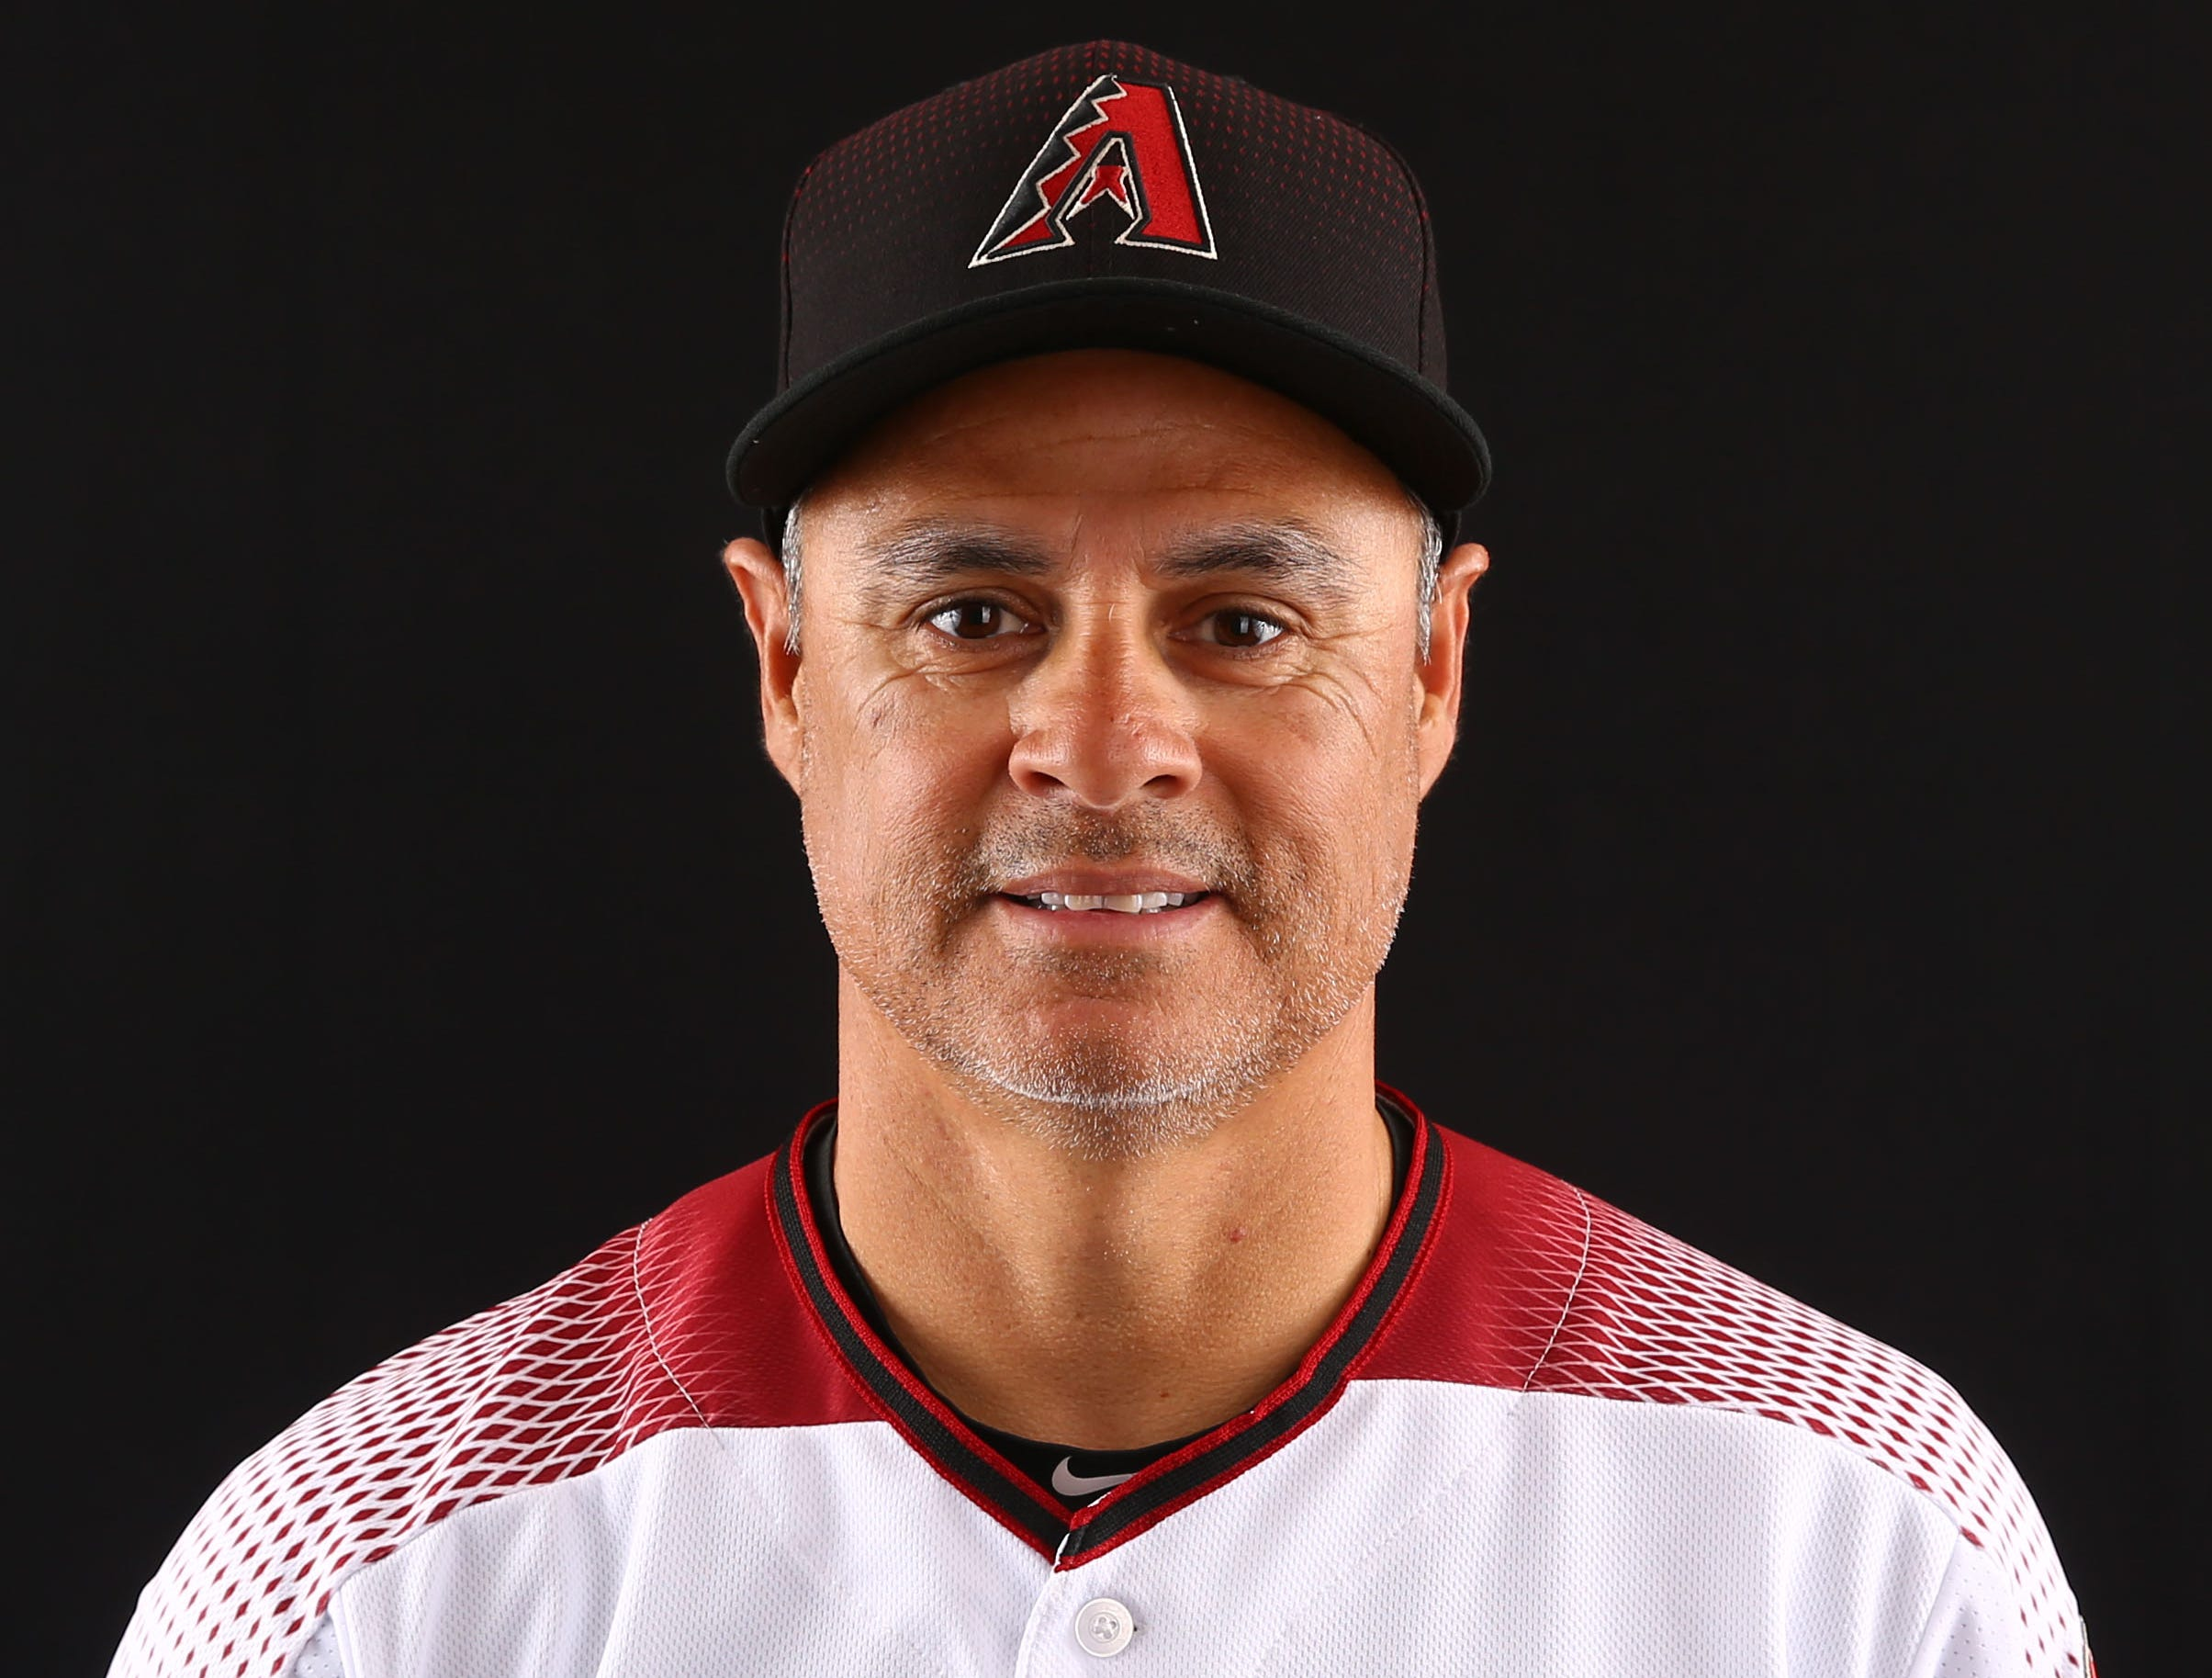 Tony Perezchica of Arizona Diamondbacks poses for a photo during the annual Spring Training Photo Day on Feb. 20 at Salt River Fields in Scottsdale, Ariz.